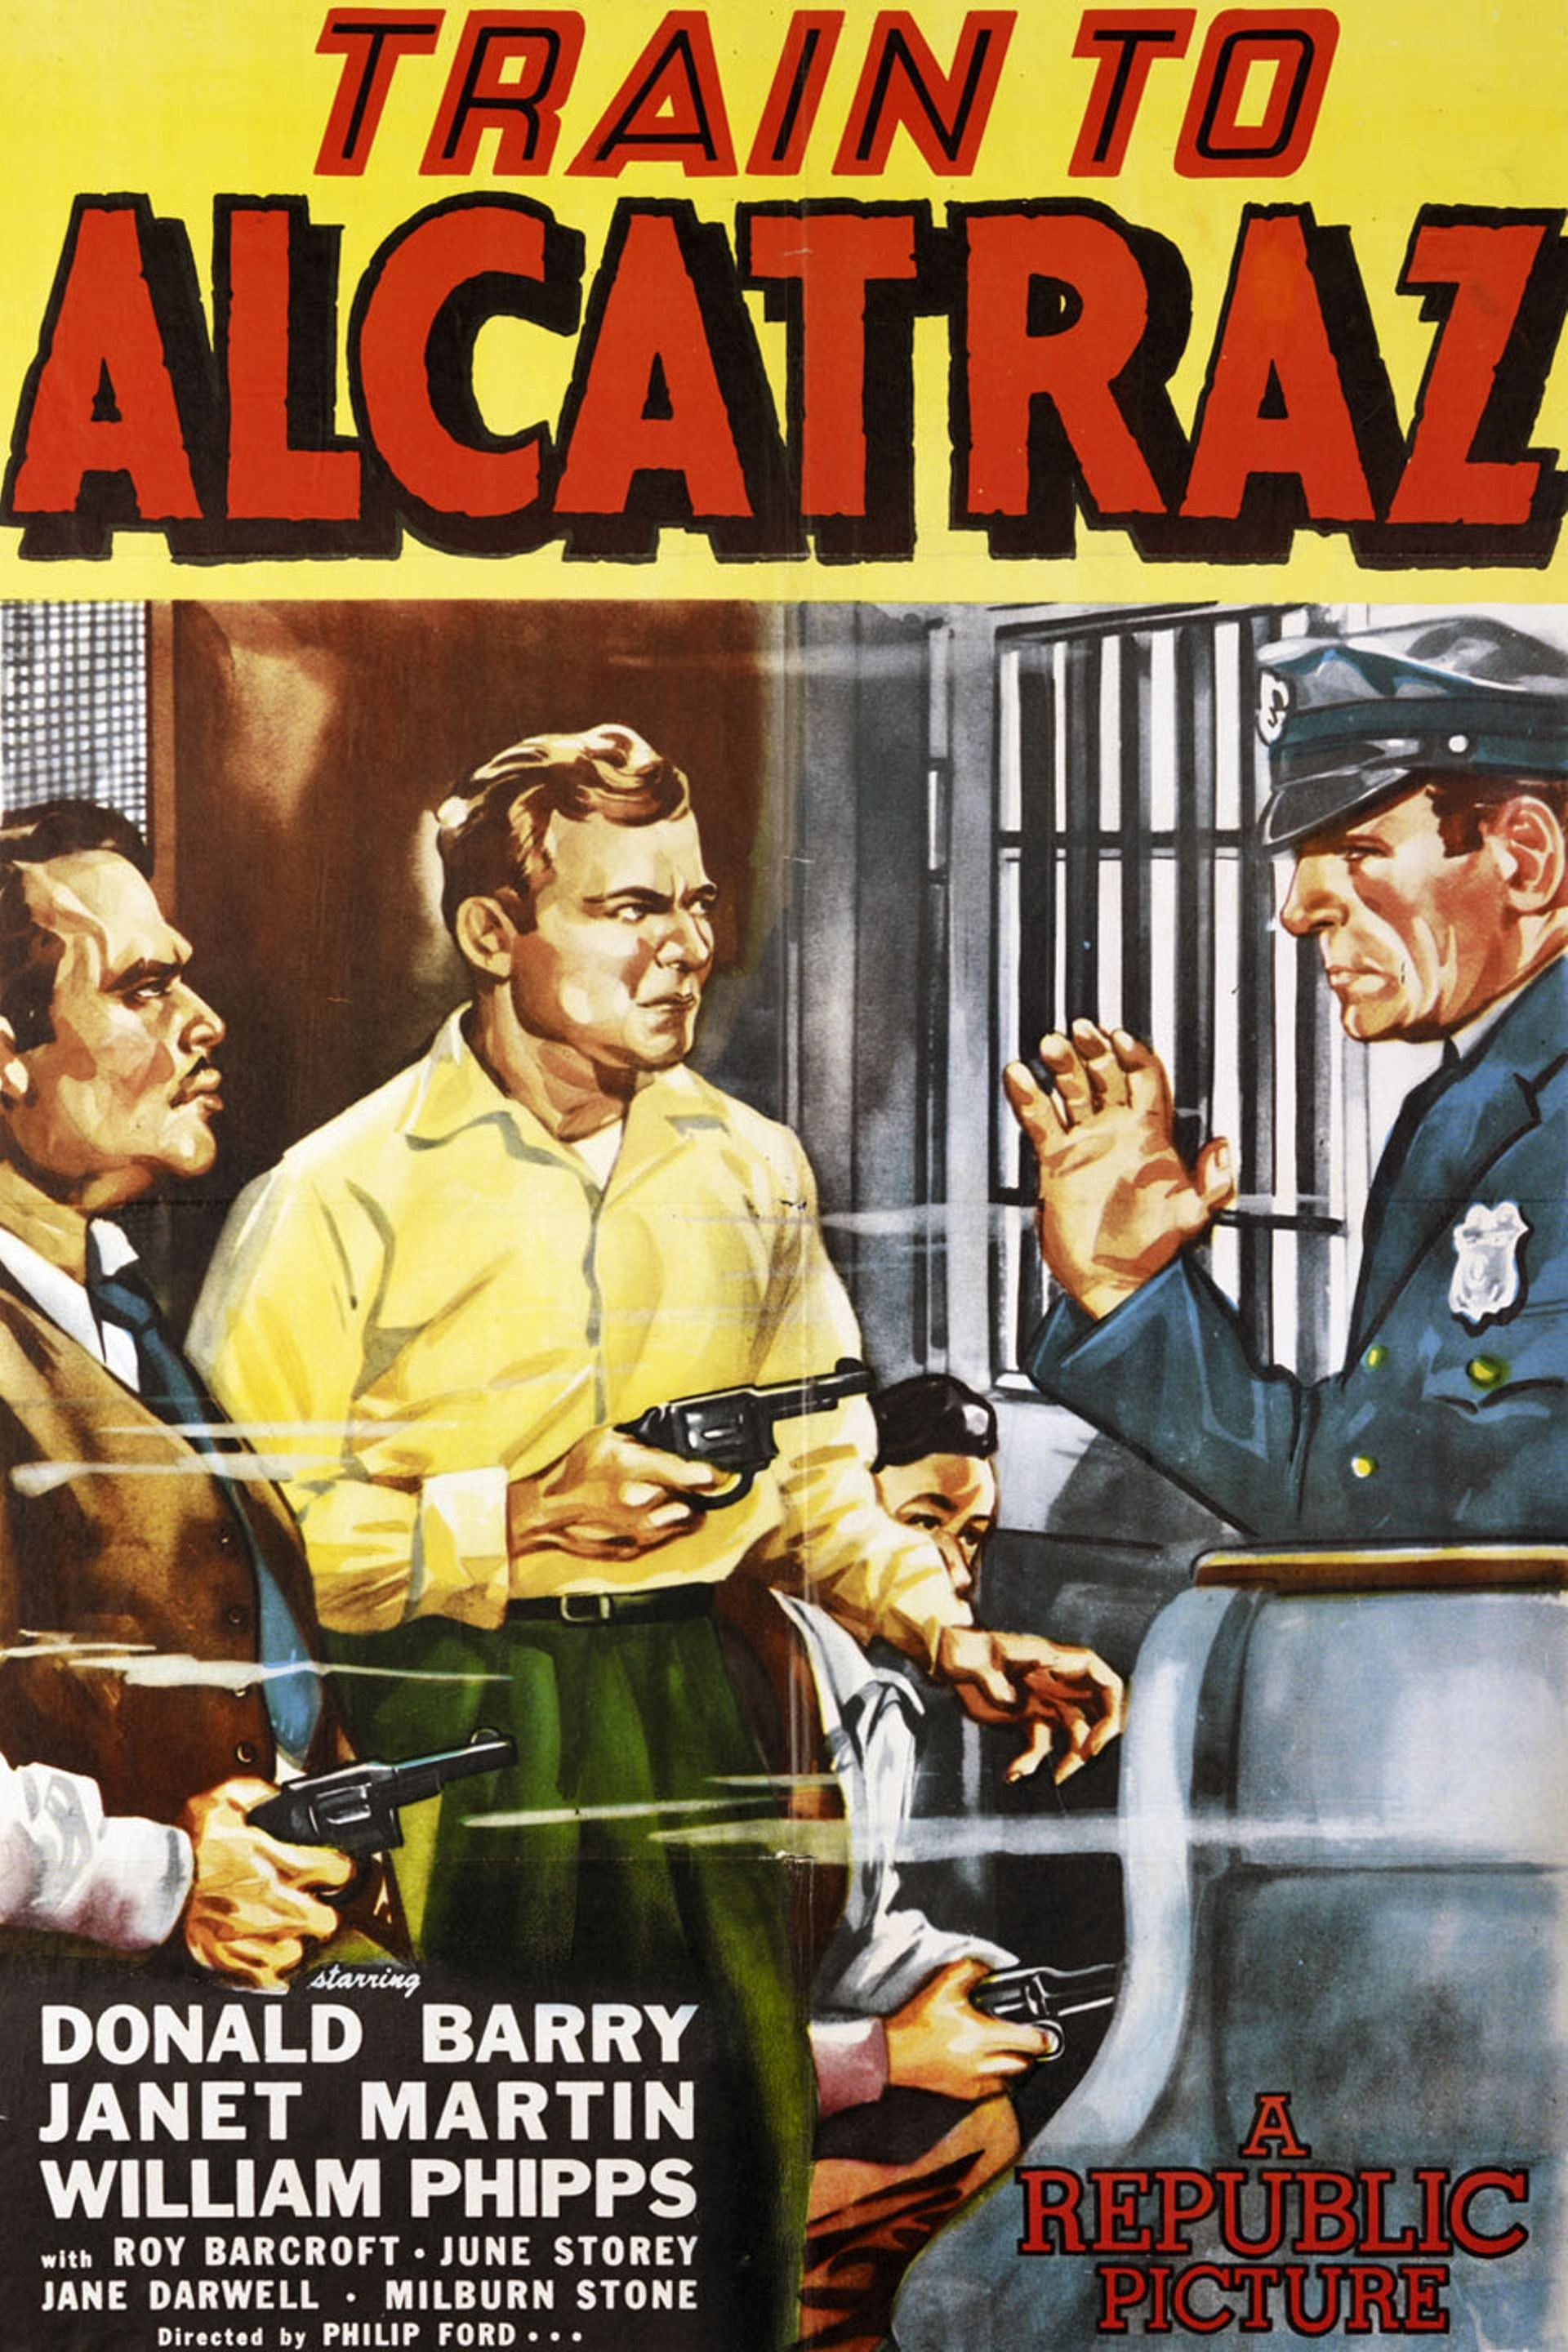 Train To Alcatraz Movie Poster 1948 Plot A Group Of Prisoners